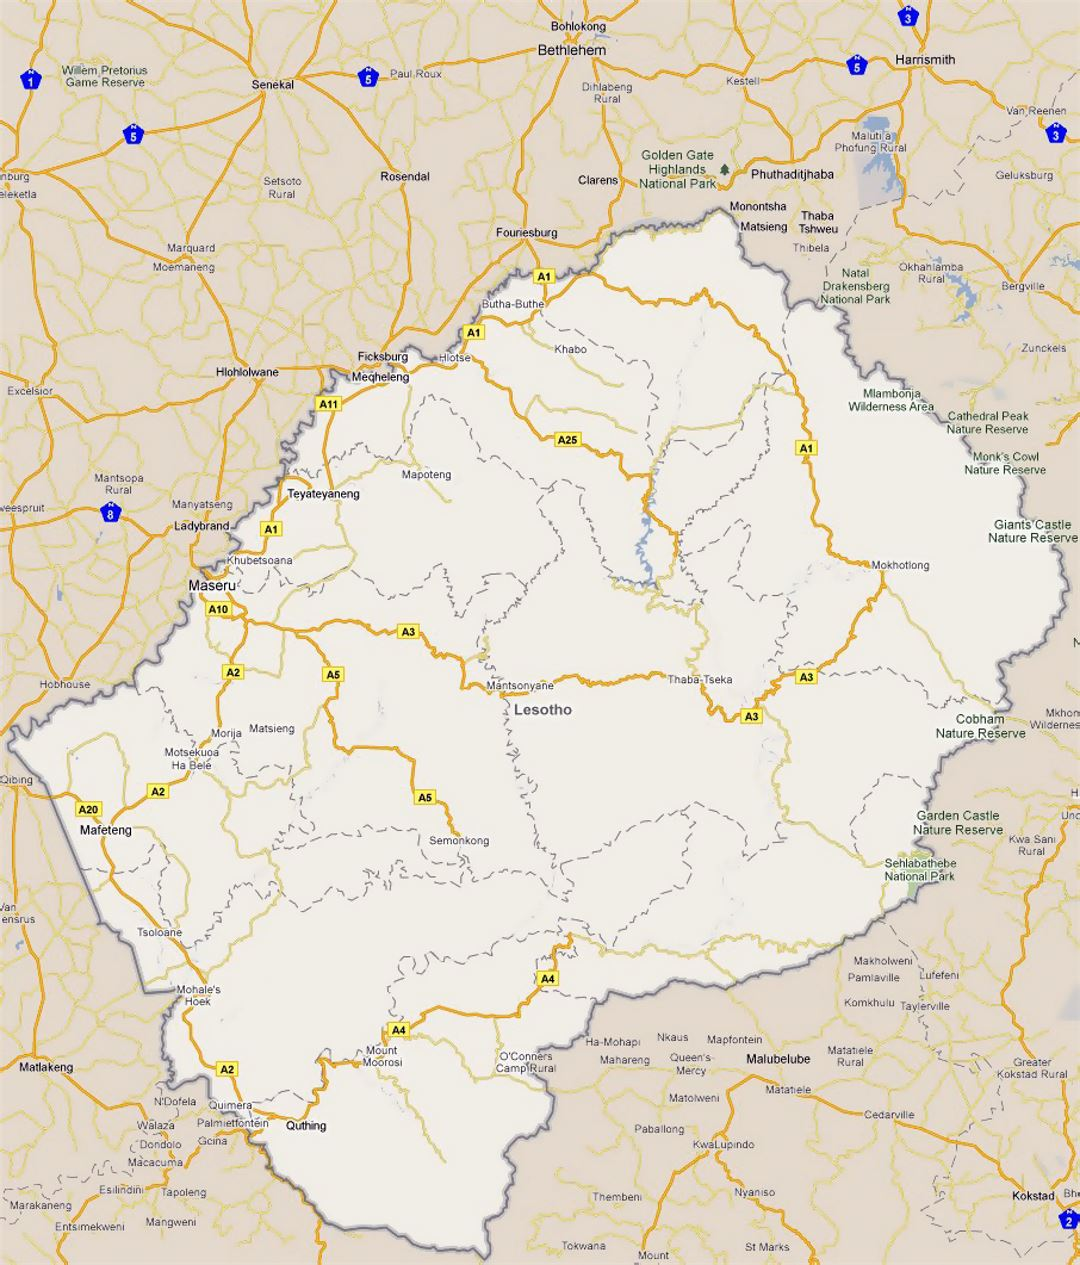 Detailed road map of Lesotho with cities